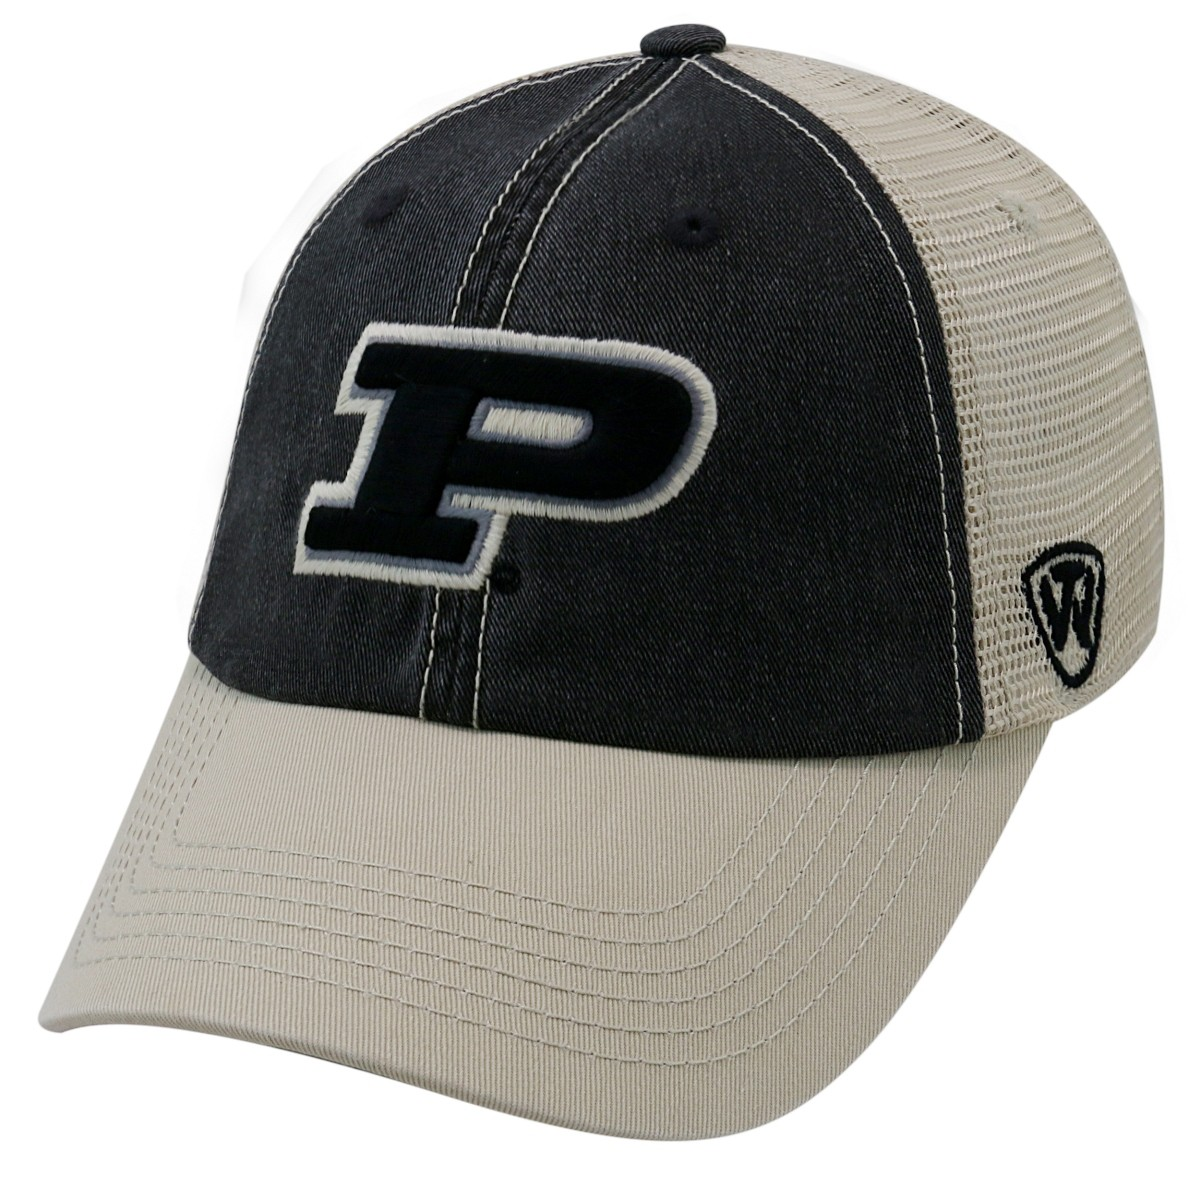 free shipping 3a097 edac4 ... cheapest details about purdue boilermakers ncaa top of the world off  road adjustable mesh back hat